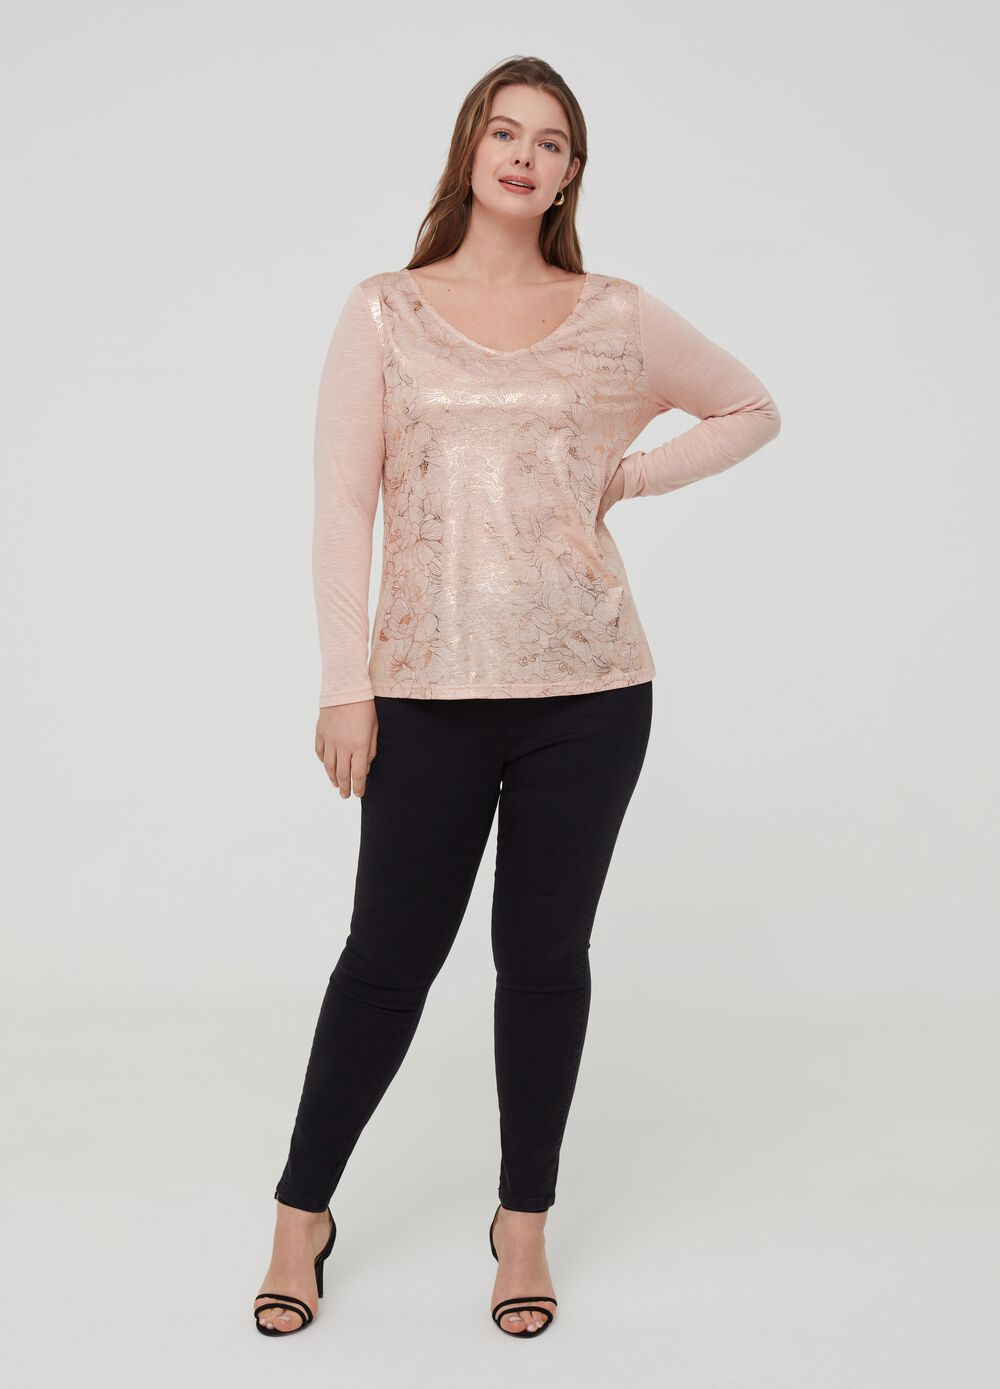 Curvy T-shirt with floral print